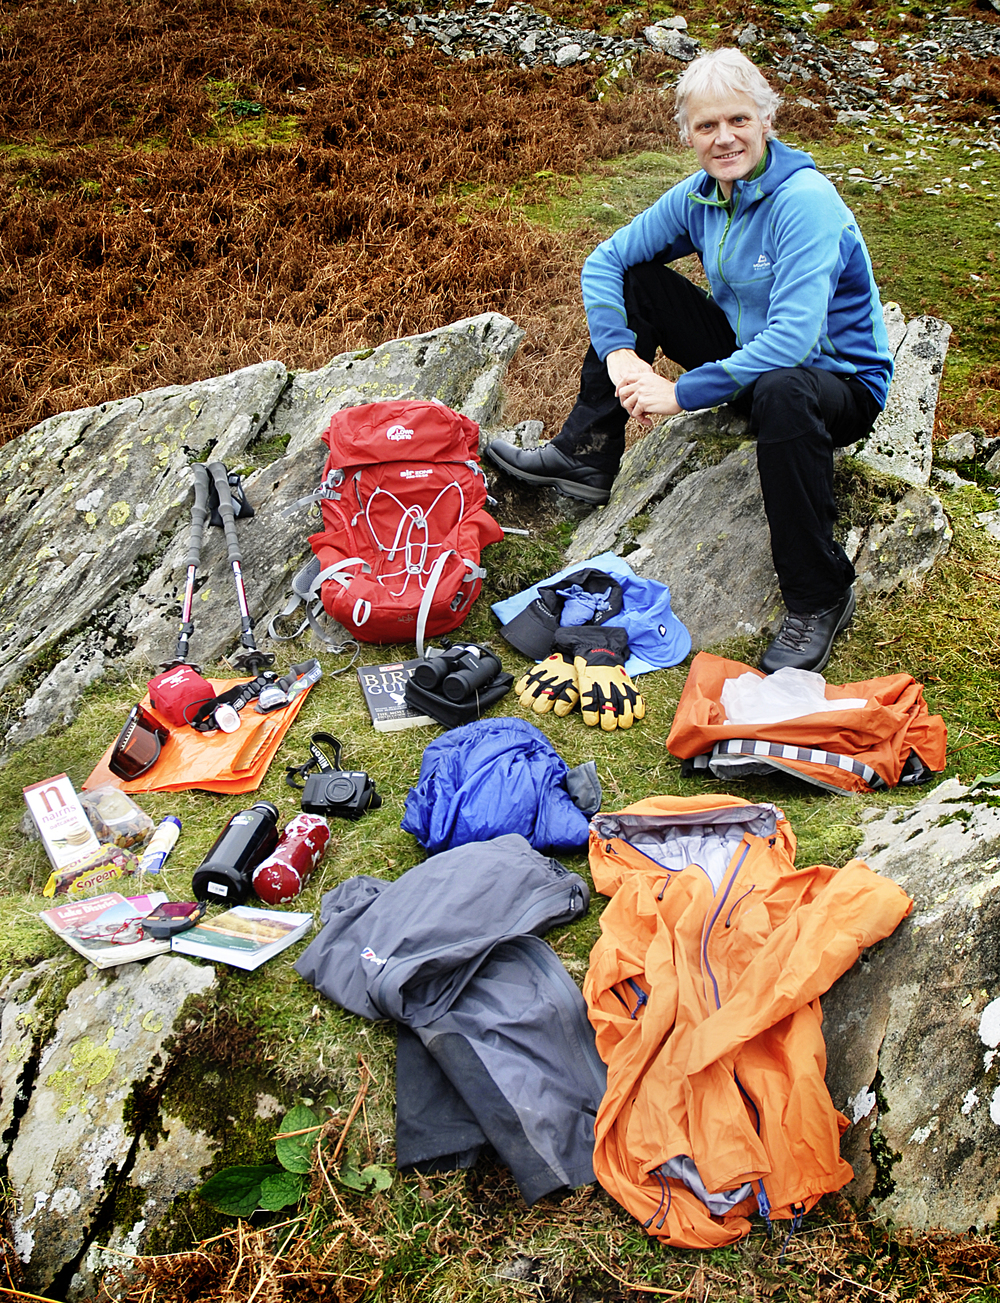 Graham Thompson, Trail Magazine's technical editor, displays the contents of his rucksack! Photo: Graham Thompson / Trail Magazine